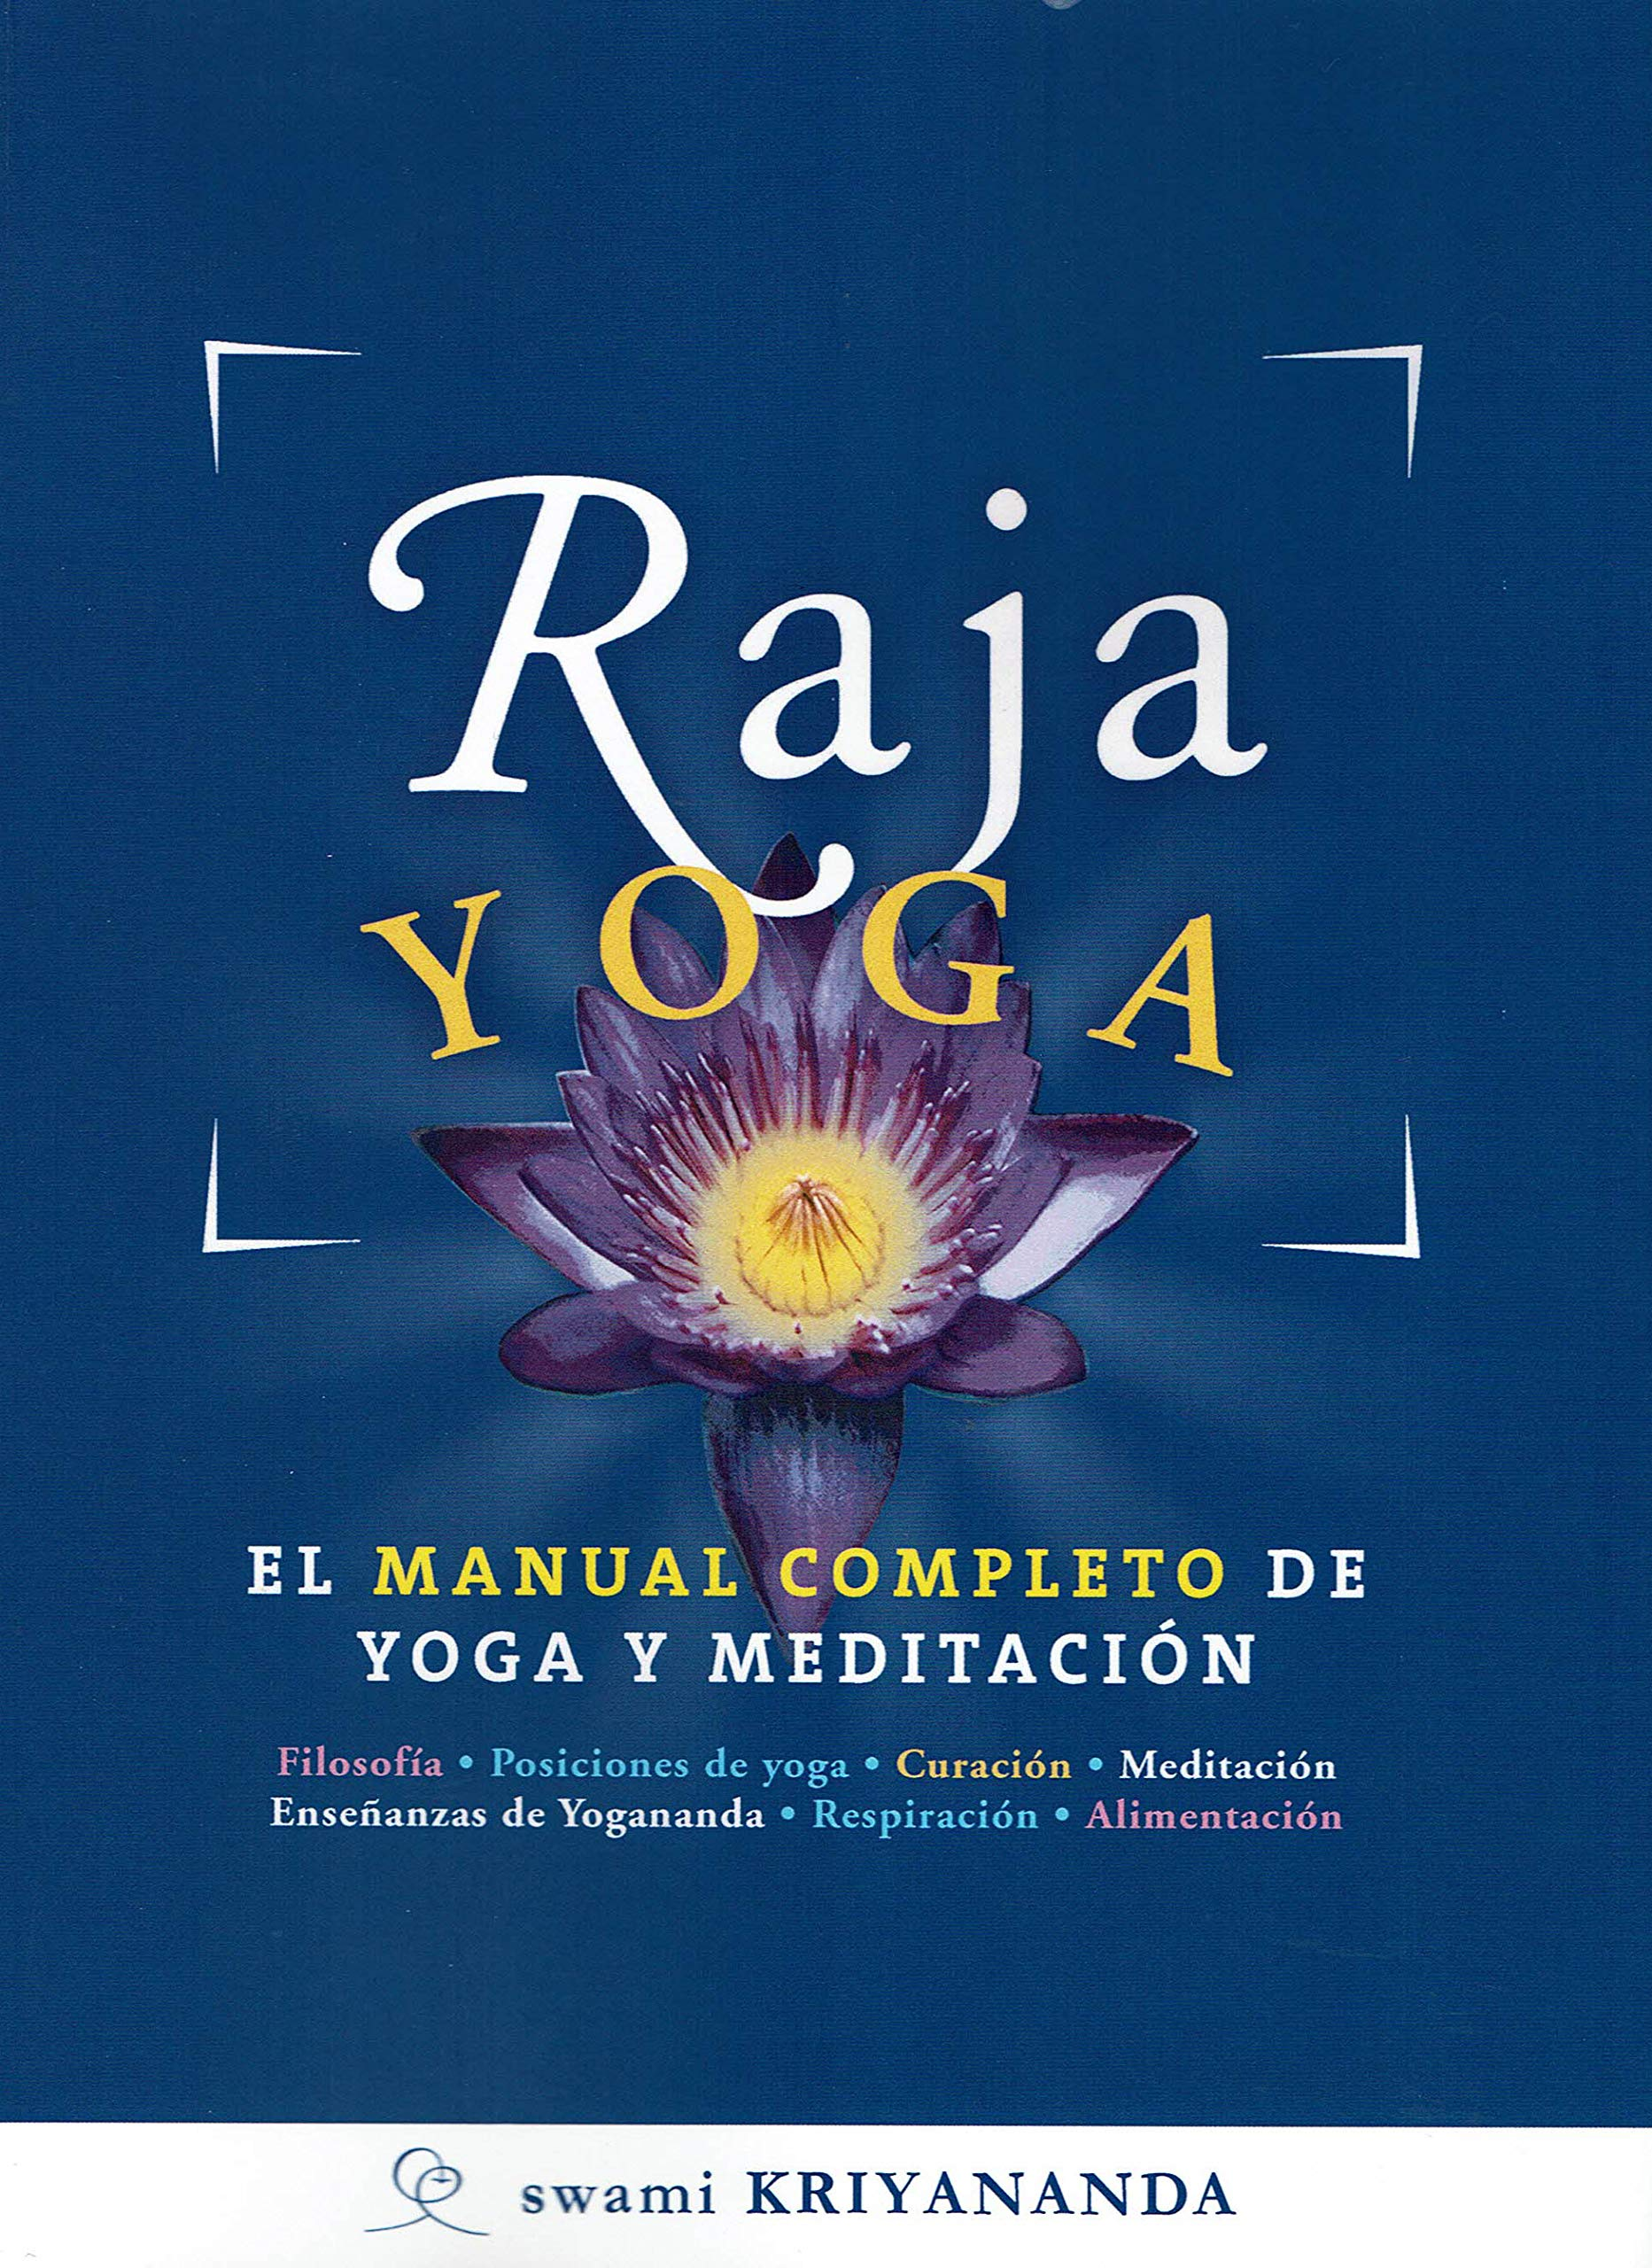 Raja Yoga: Swami Kriyananda: 9788494196881: Amazon.com: Books